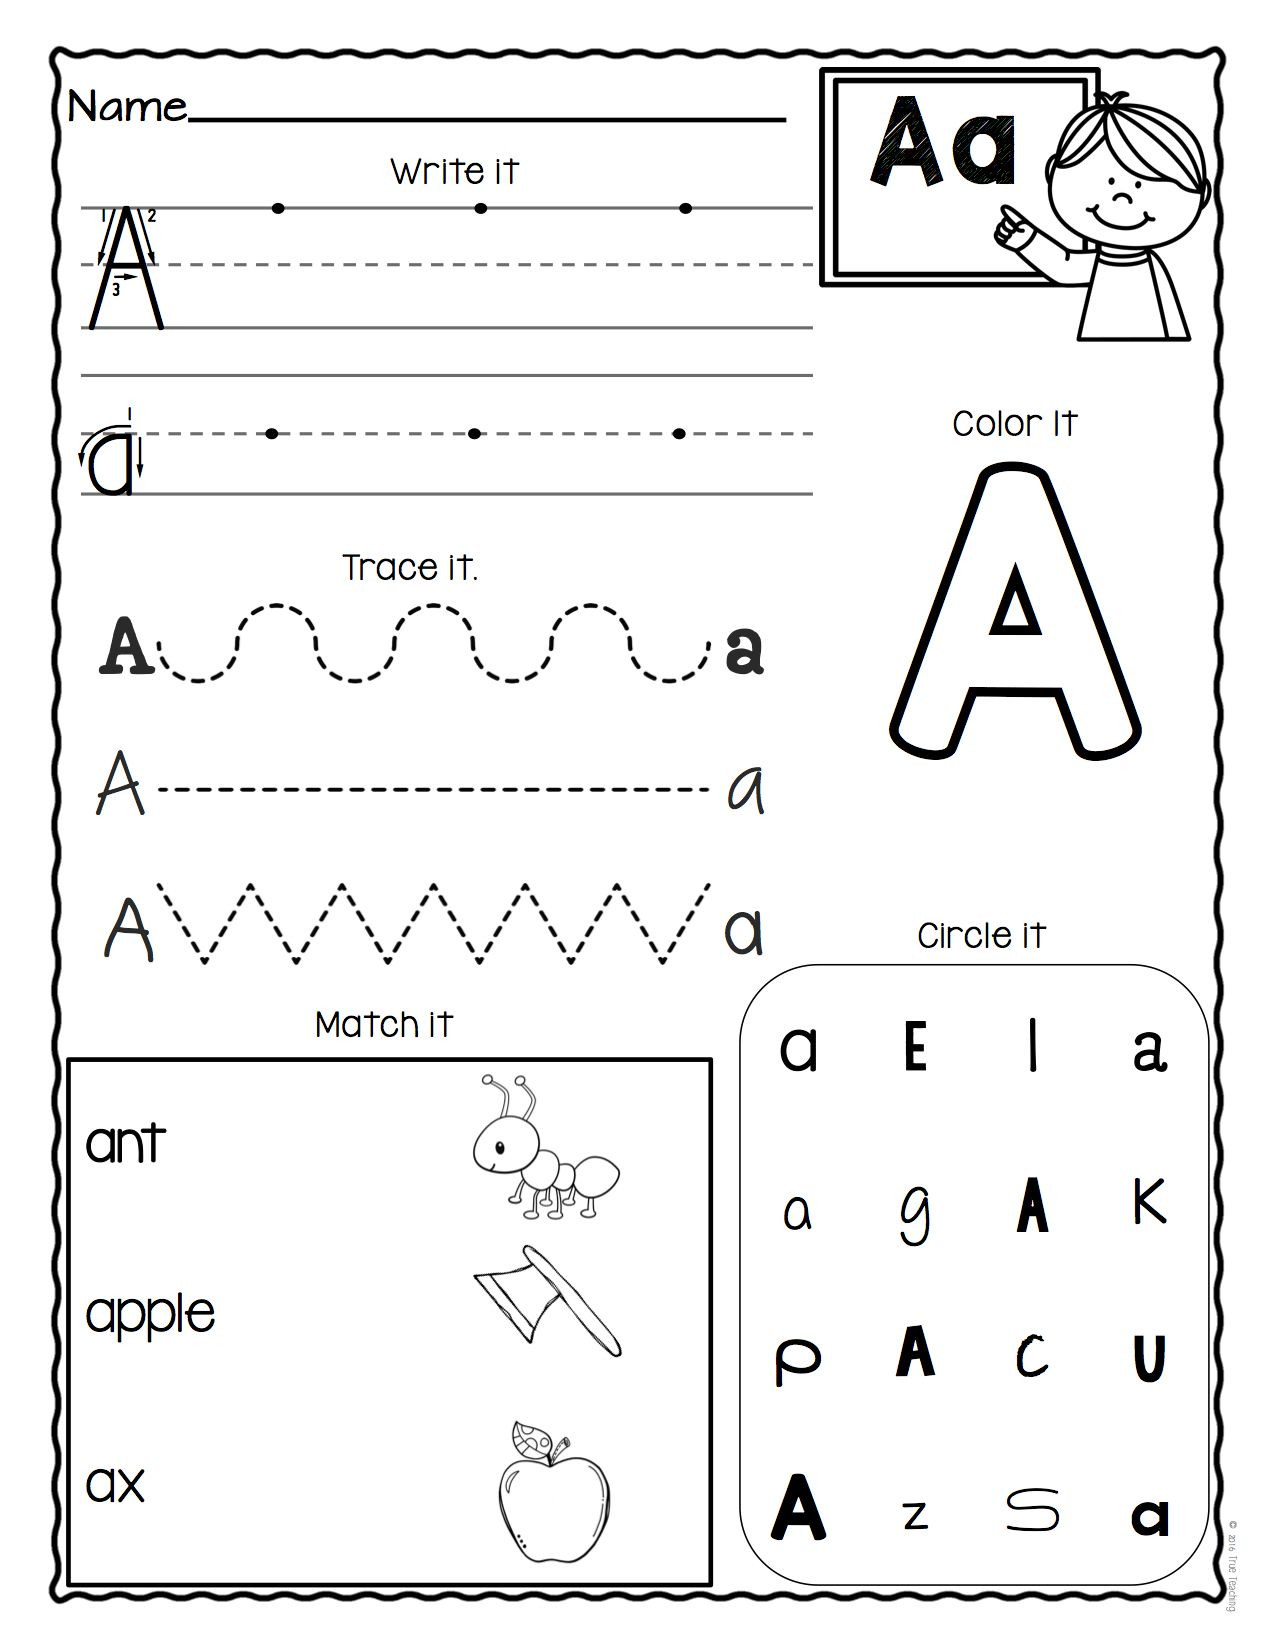 Preschool Alphabet Worksheets Az A Z Letter Worksheets Set 3